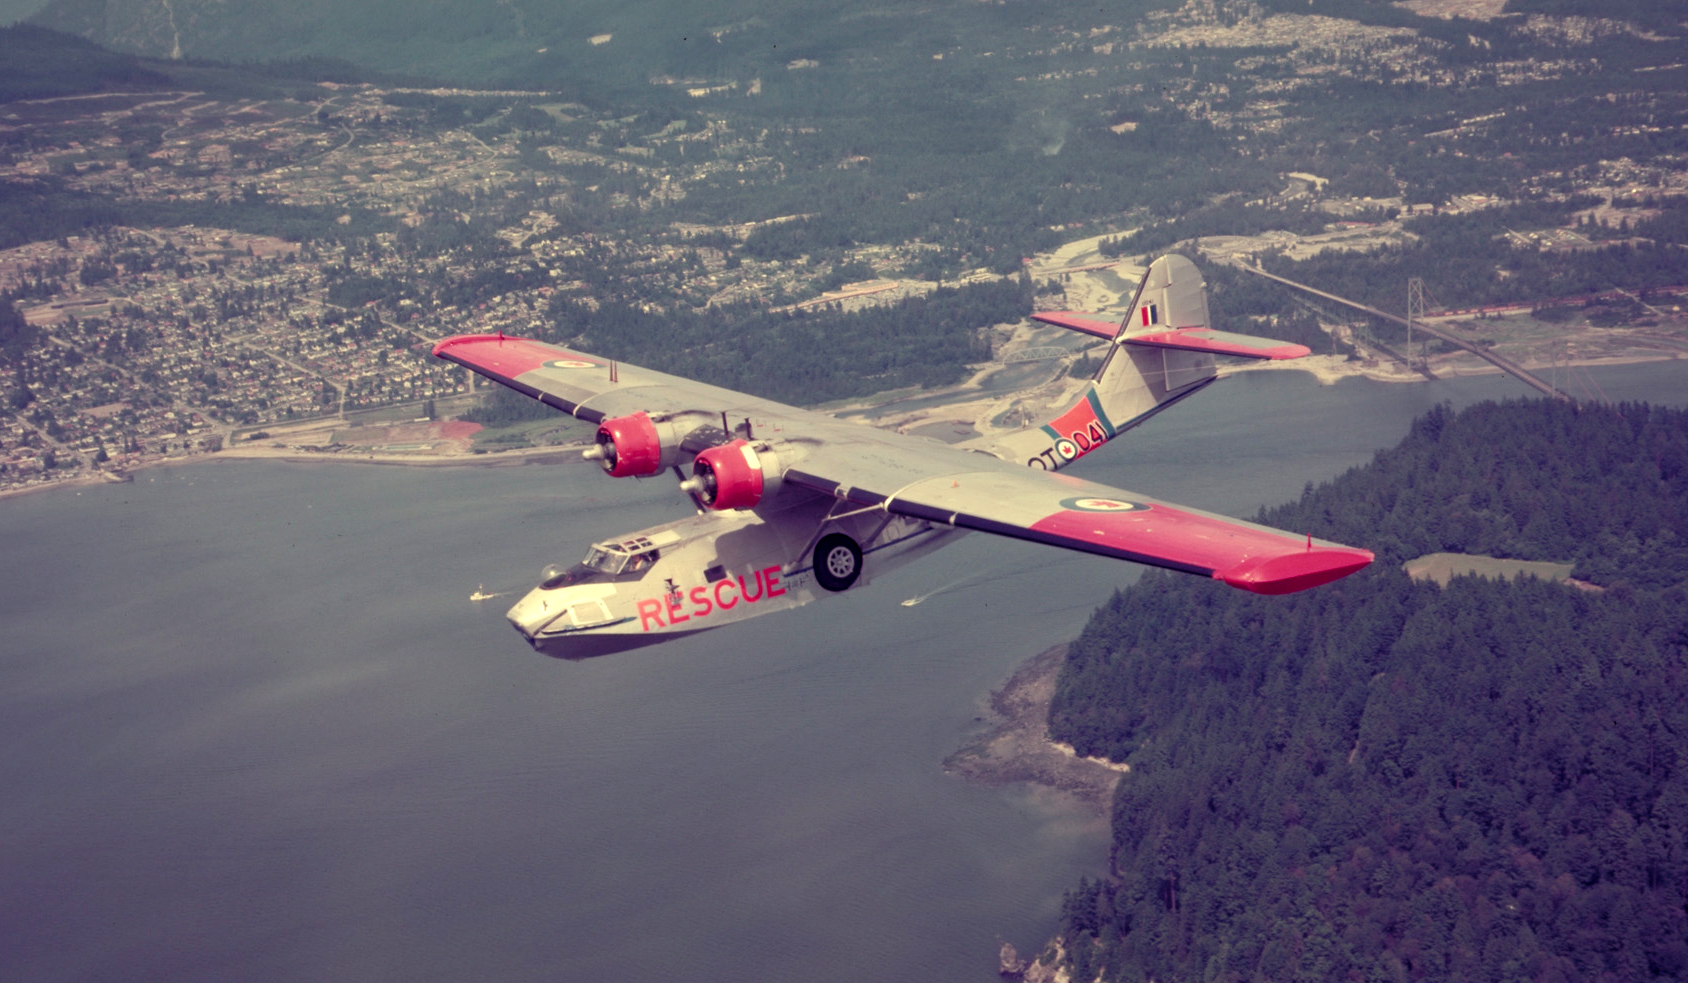 A Canso painted in search and rescue colours flies over the Lions Gate Bridge in British Columbia. PHOTO: DND Archives, PC-2156